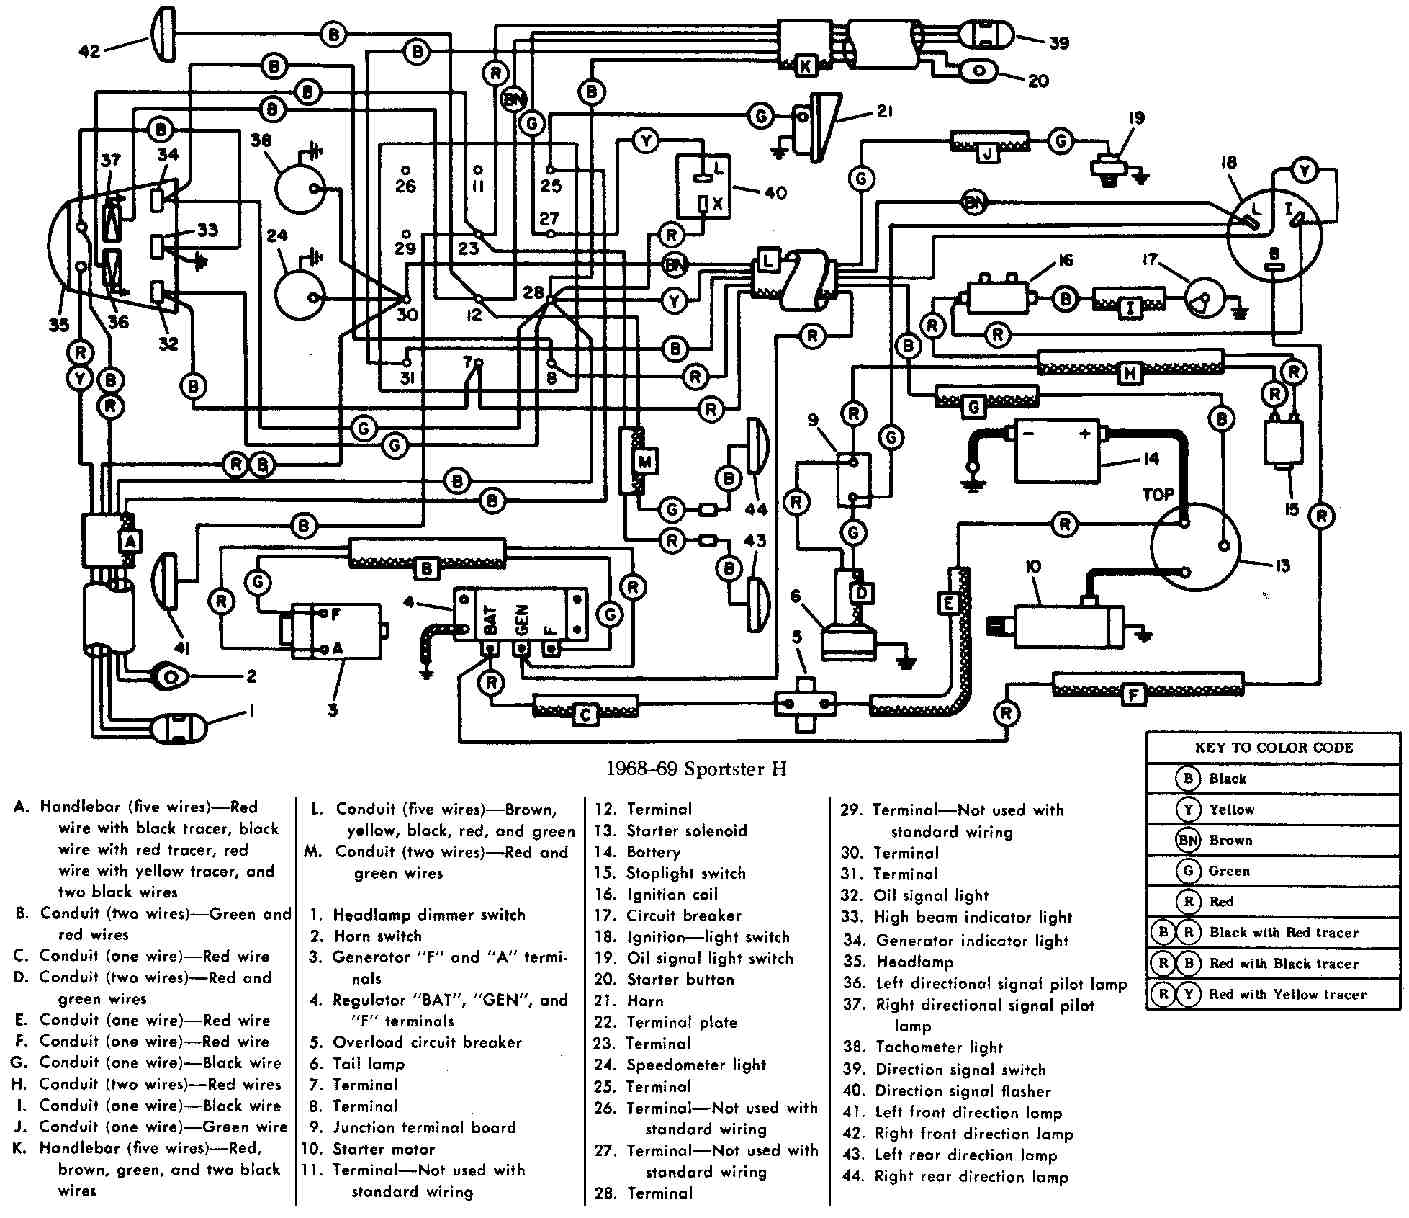 Harley Dyna Wiring Diagram Not Lossing Ignition System 2001 1990 Flhtc Fxstc 2000